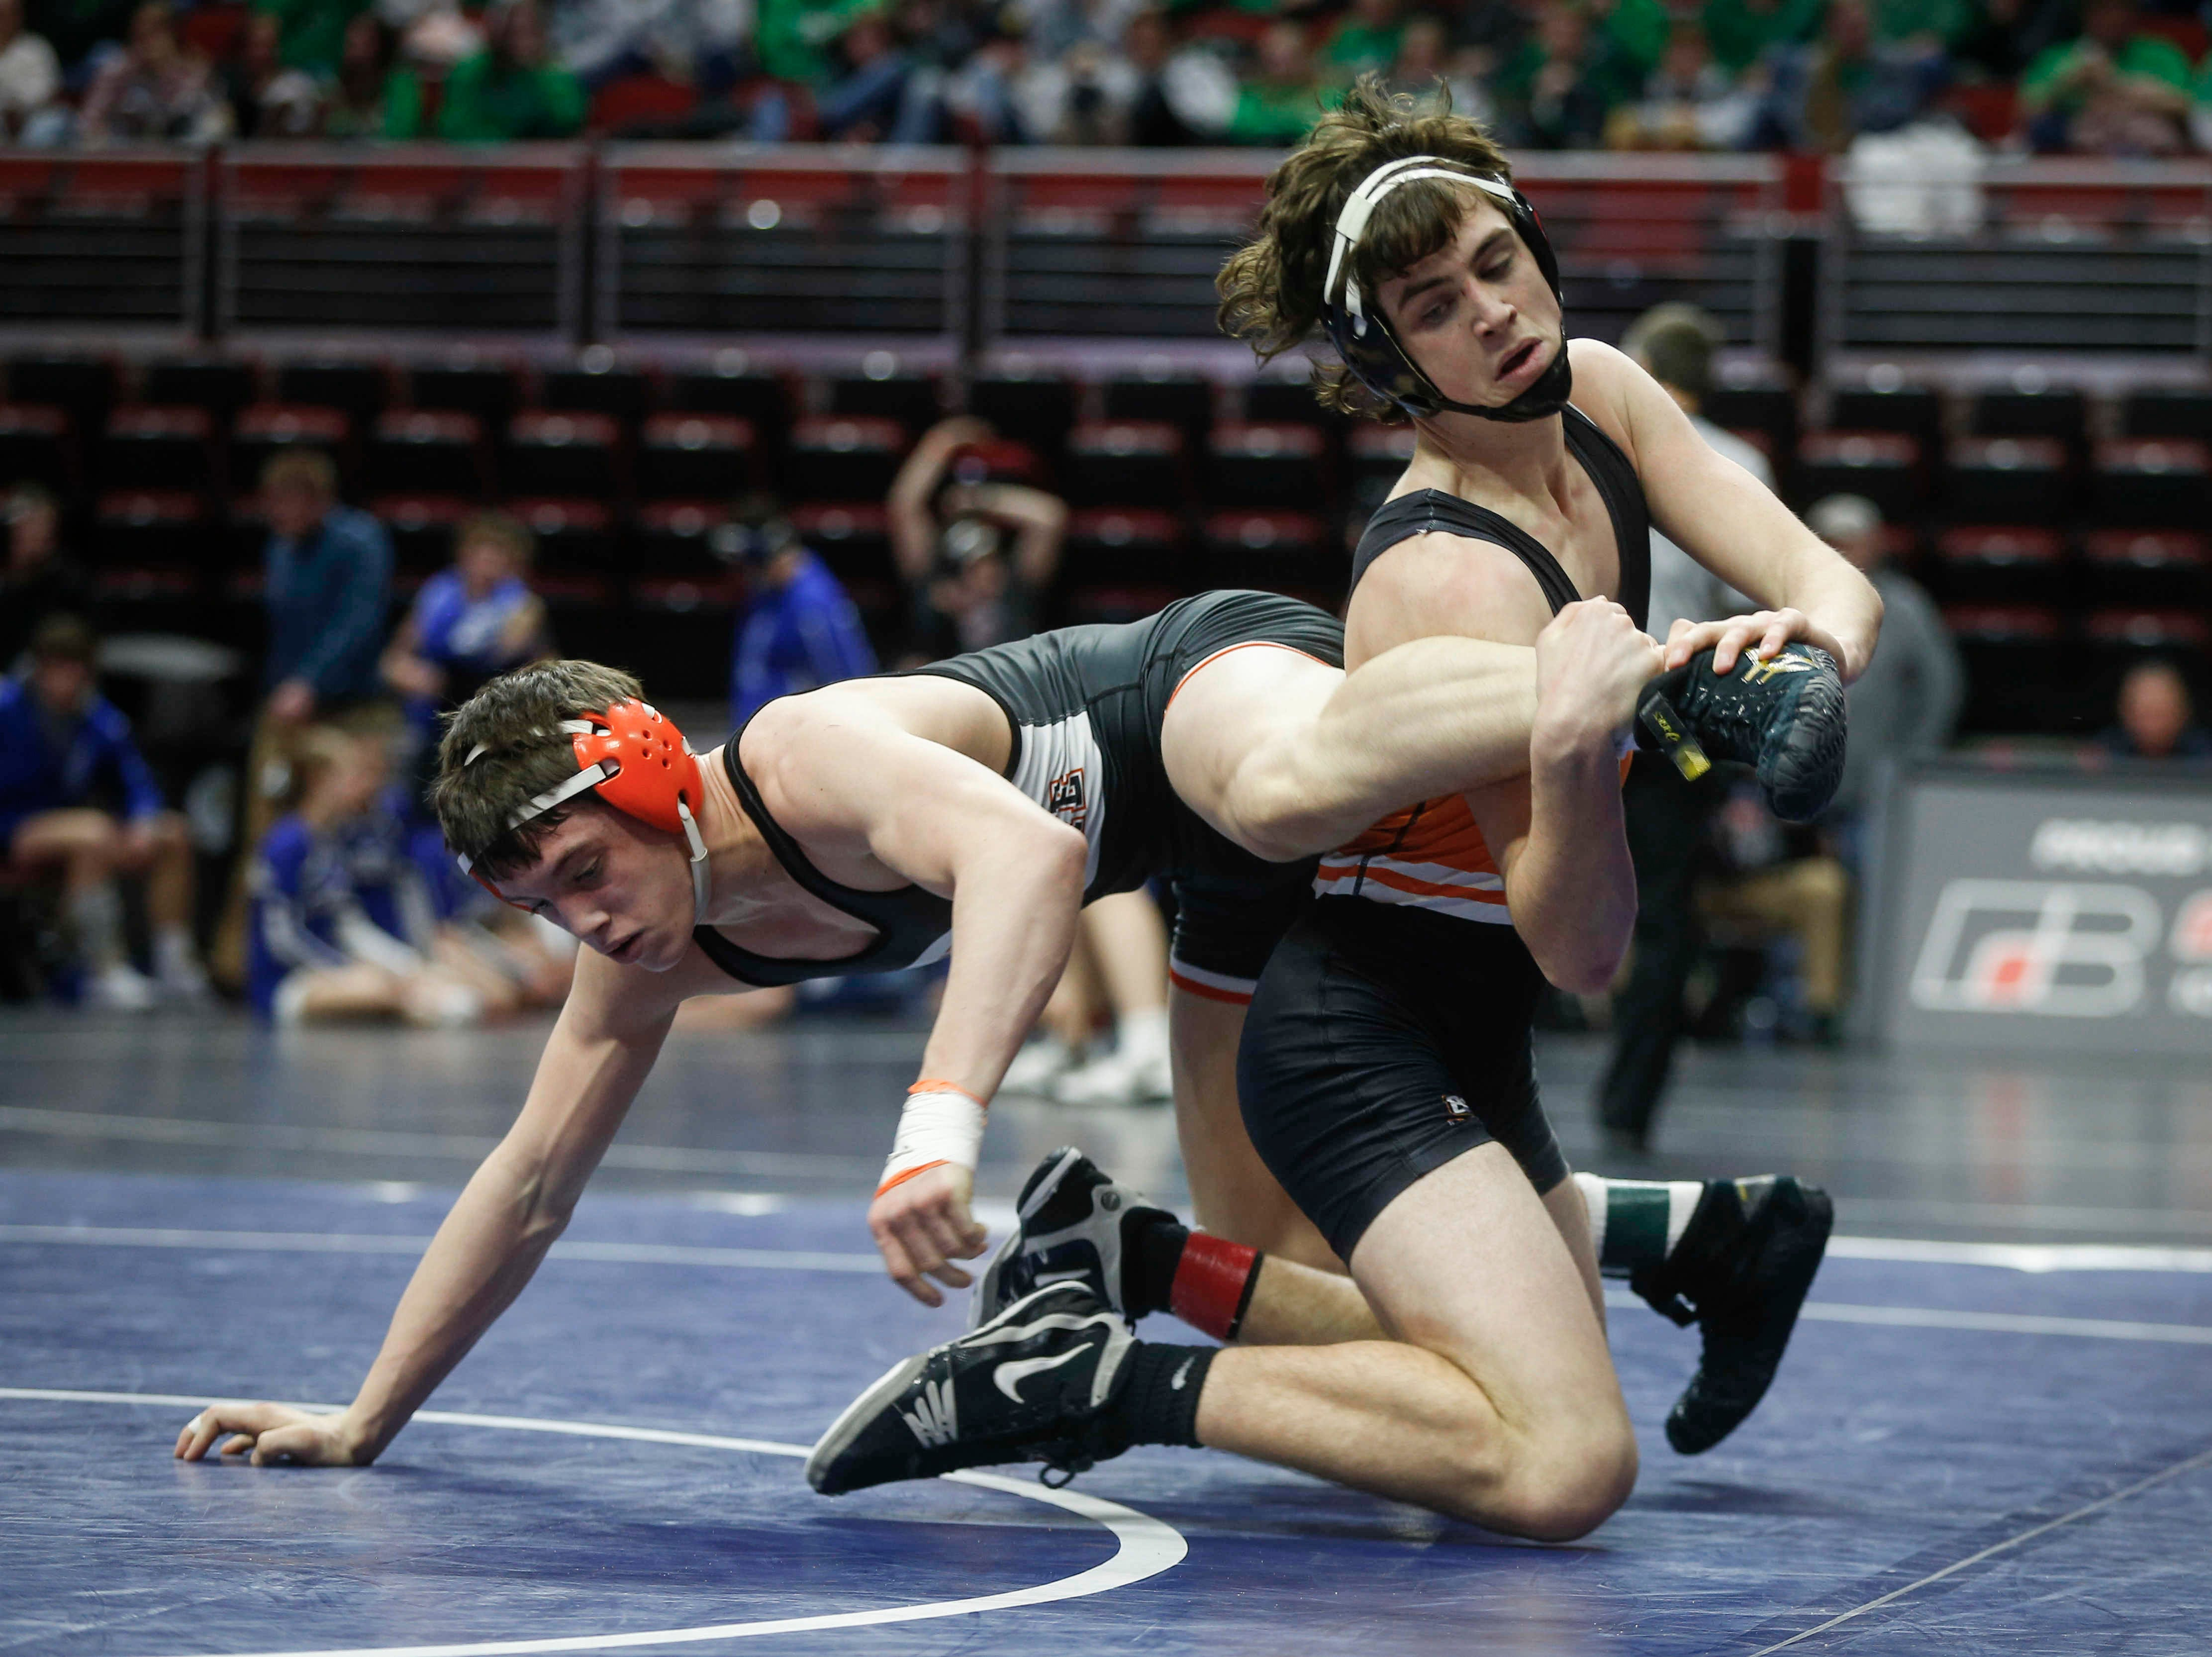 Solon's Andy Brokaw, right, pulls away from West Delaware's Wyatt Voelker in their match at 170 during the 2019 Iowa high school dual wrestling state tournament on Wednesday, Feb. 13, 2019, at Wells Fargo Arena in Des Moines.